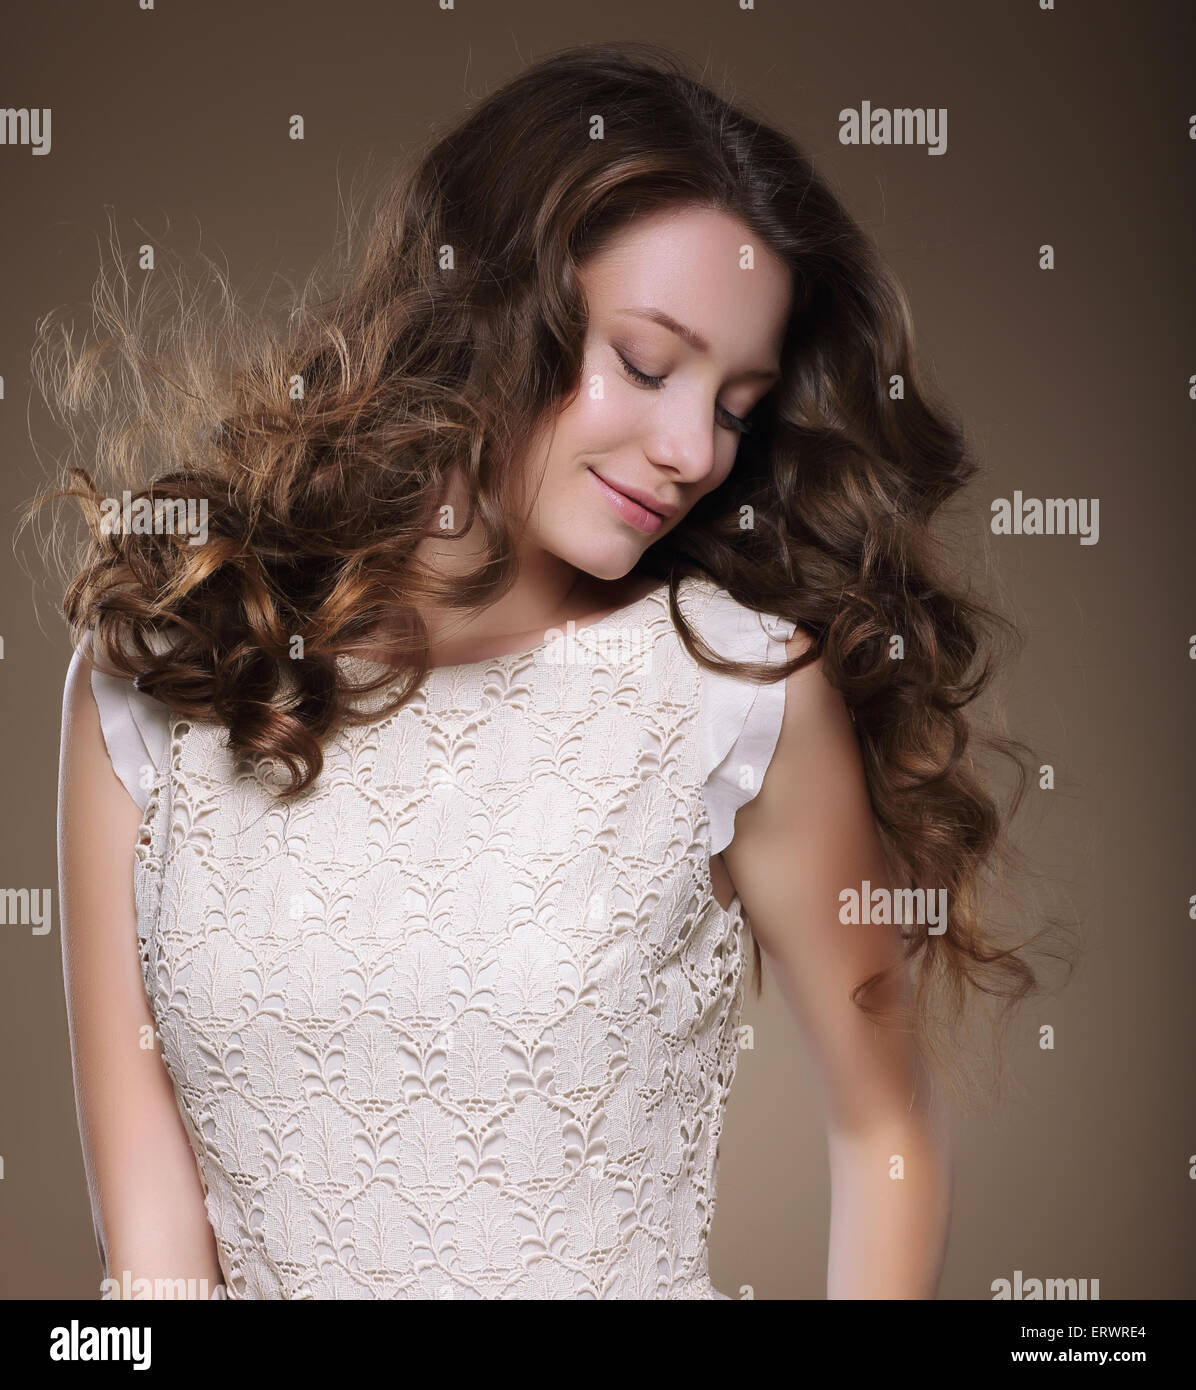 Pure Beauty. Young Brunette with Closed Eyes - Stock Image